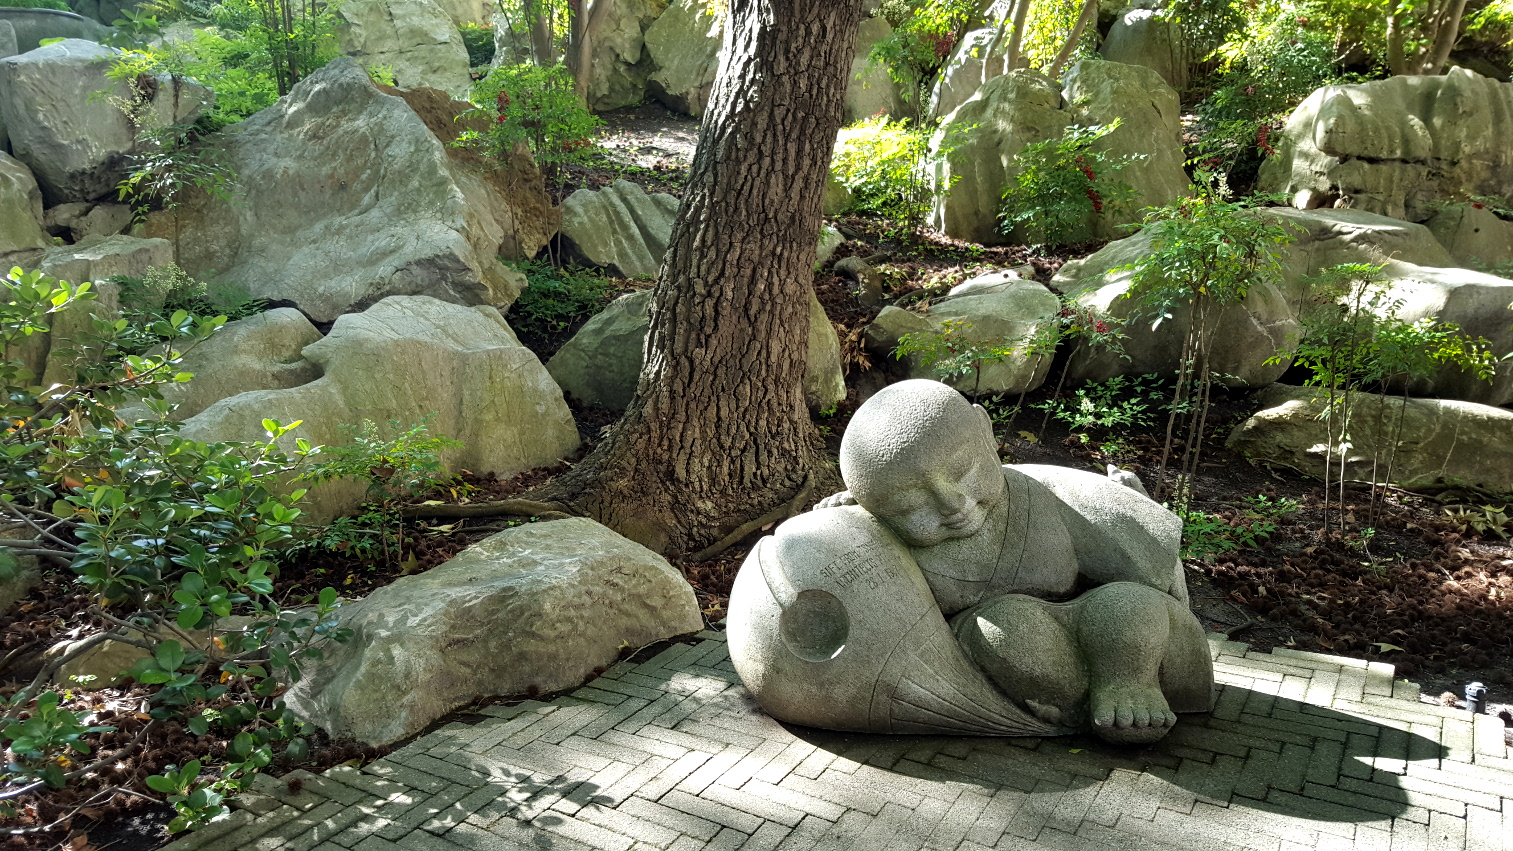 Wonderful chinese garden of friendship in sydney a gentle colour photograph showing a sculptural feature in the garden click to enlarge photograph taken by cj walsh 2016 11 10 biocorpaavc